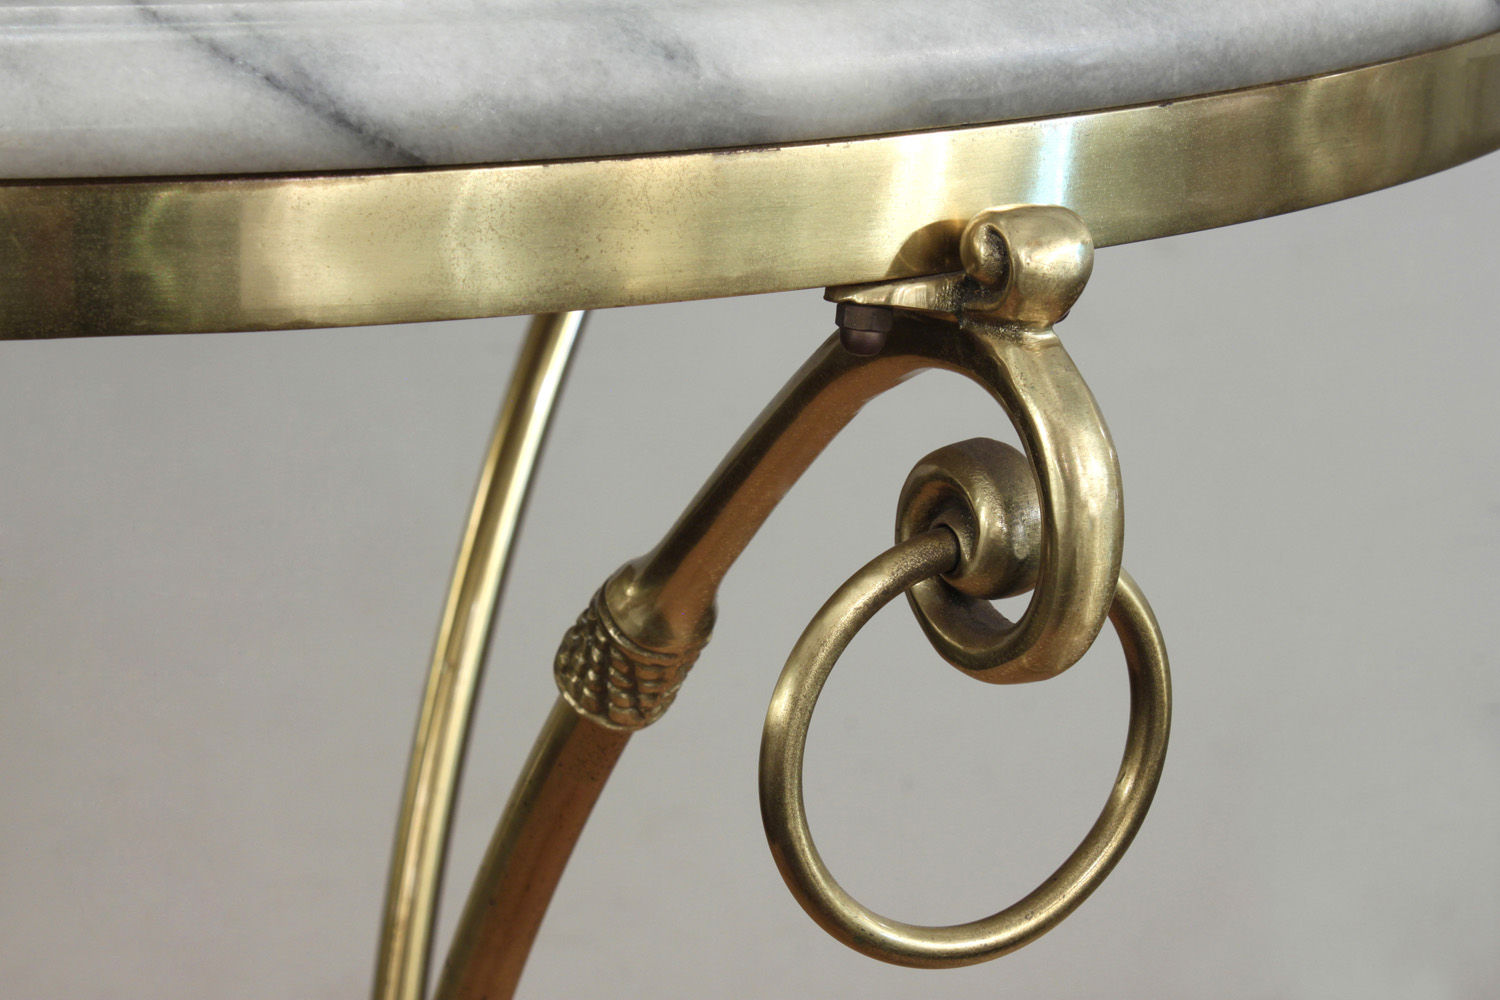 40s 75 neoclassical bronze+mrble endtable162 hires detail 3.jpg